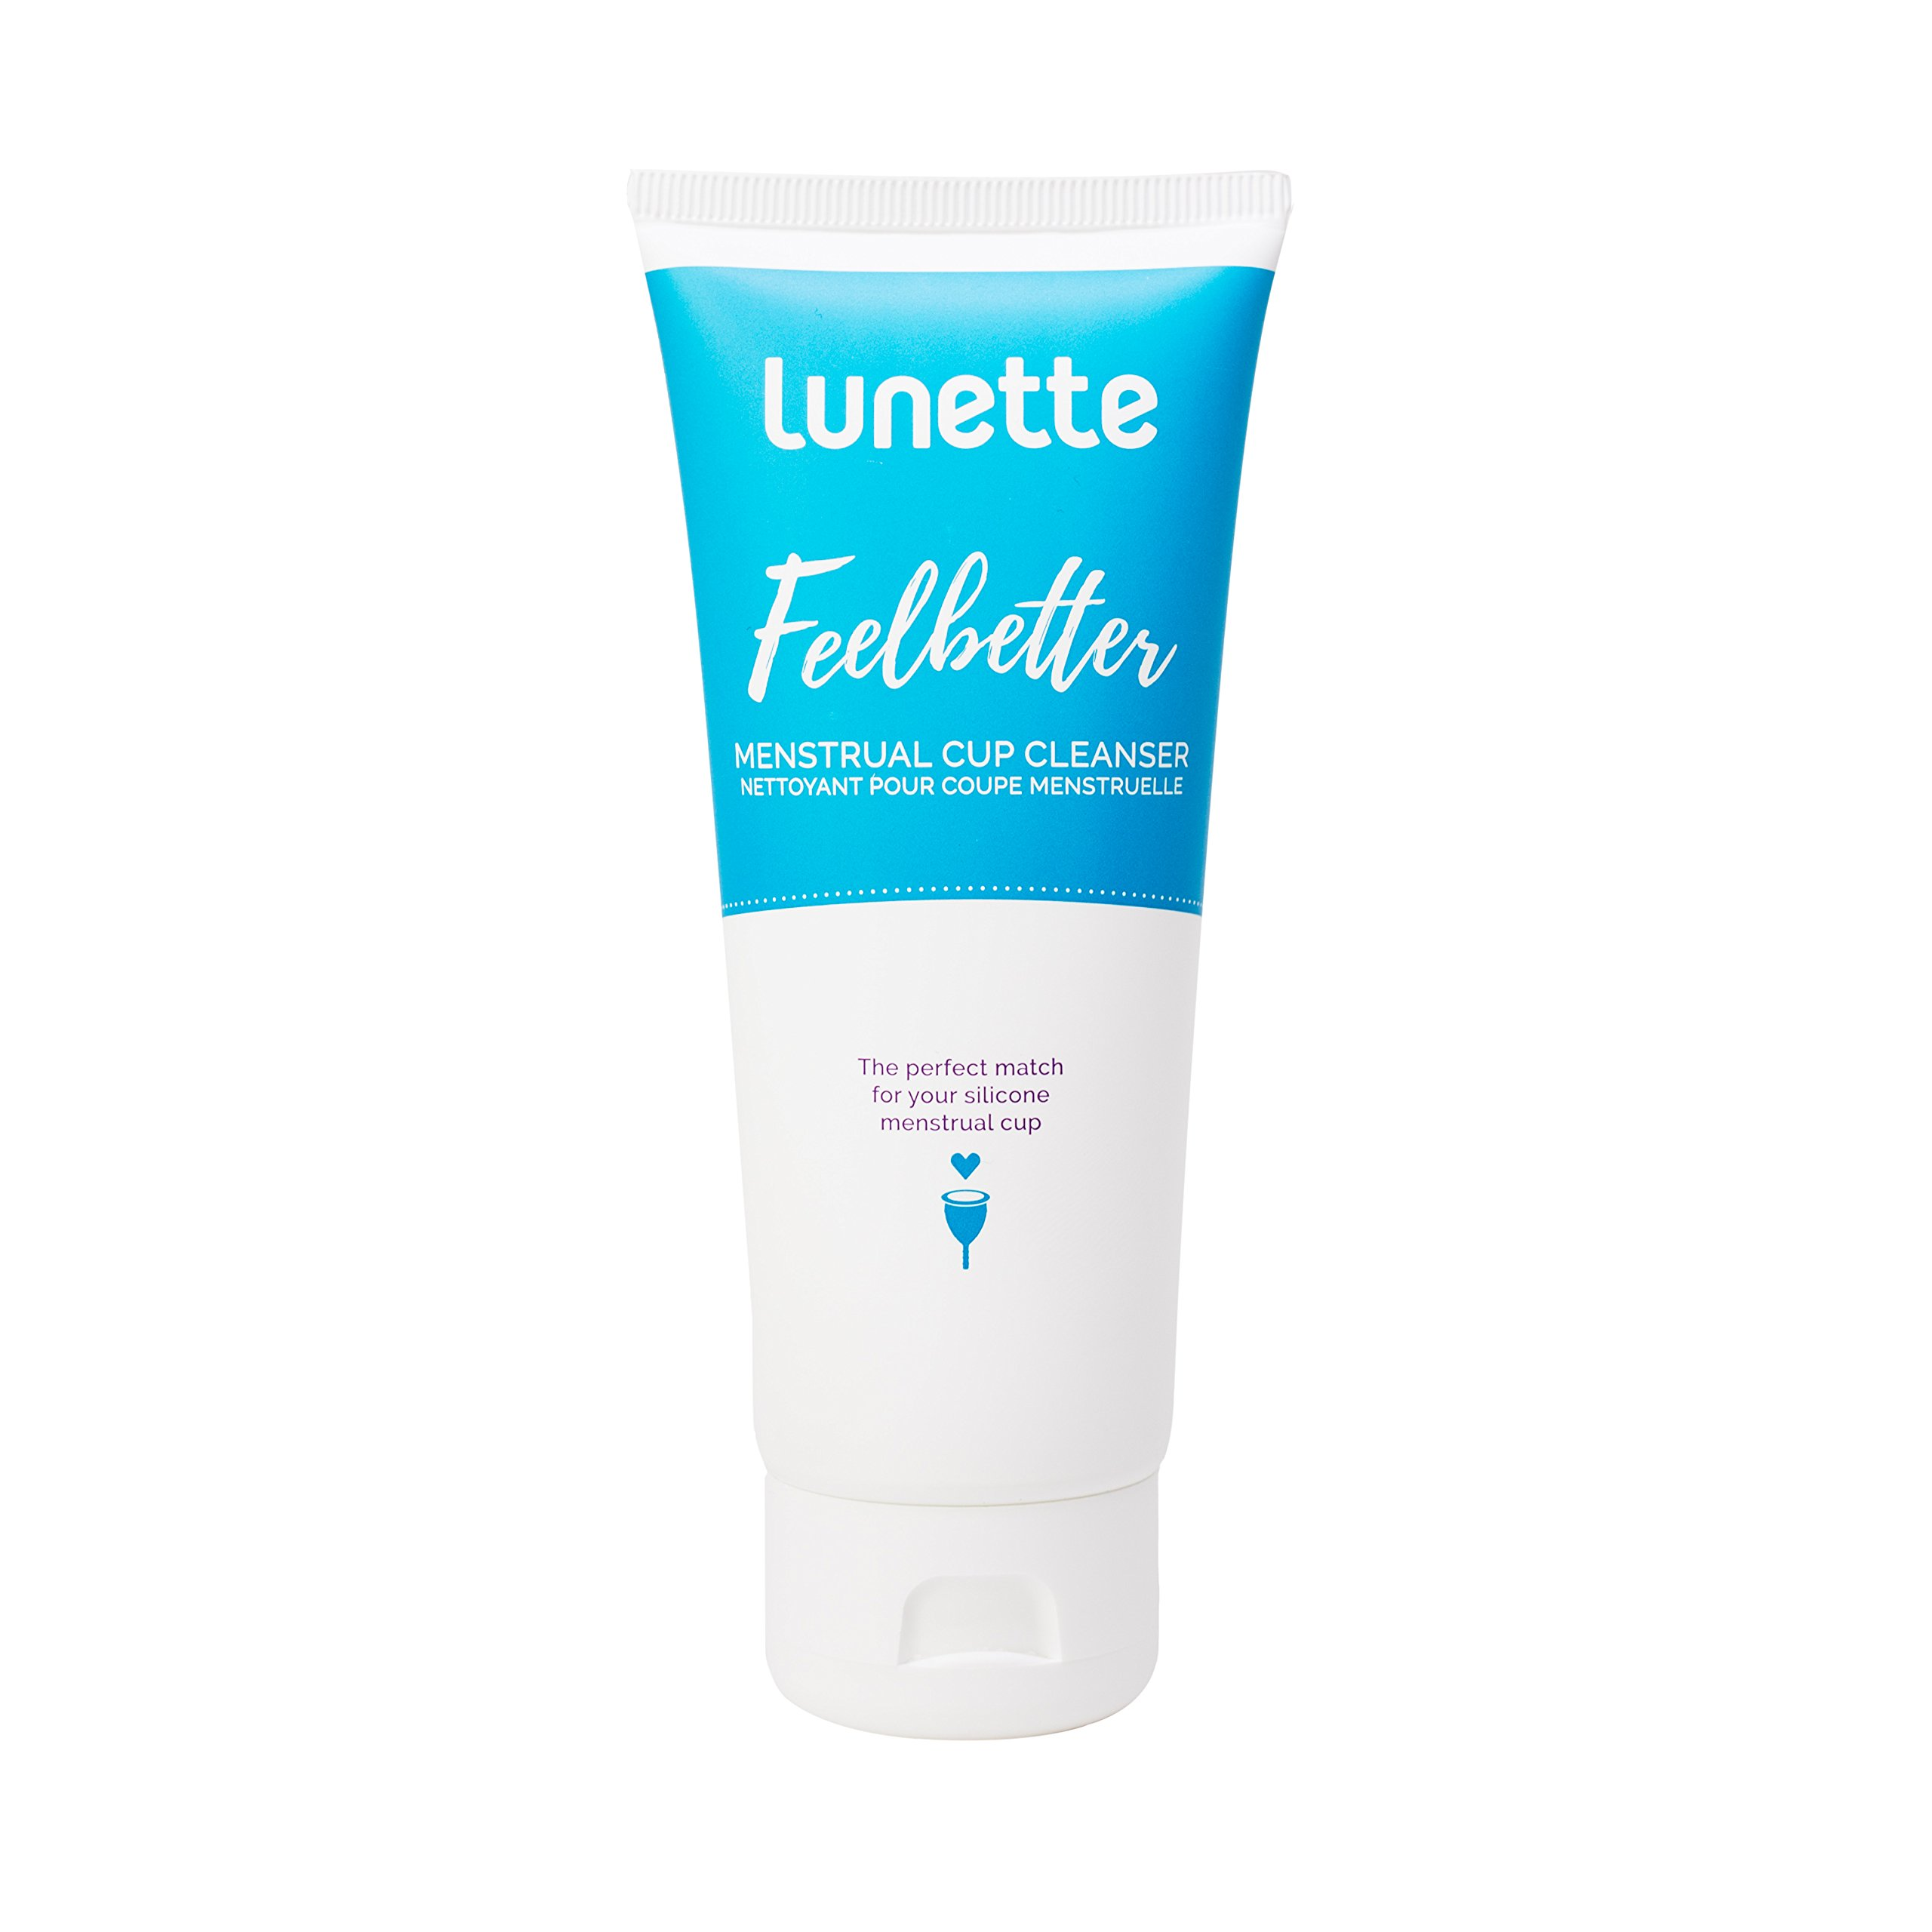 Lunette Feelbetter Menstrual Cup Cleanser 3.4 fl oz - Perfect Match for Your Silicone Menstrual Cup - Vegan, Natural, No Parabens